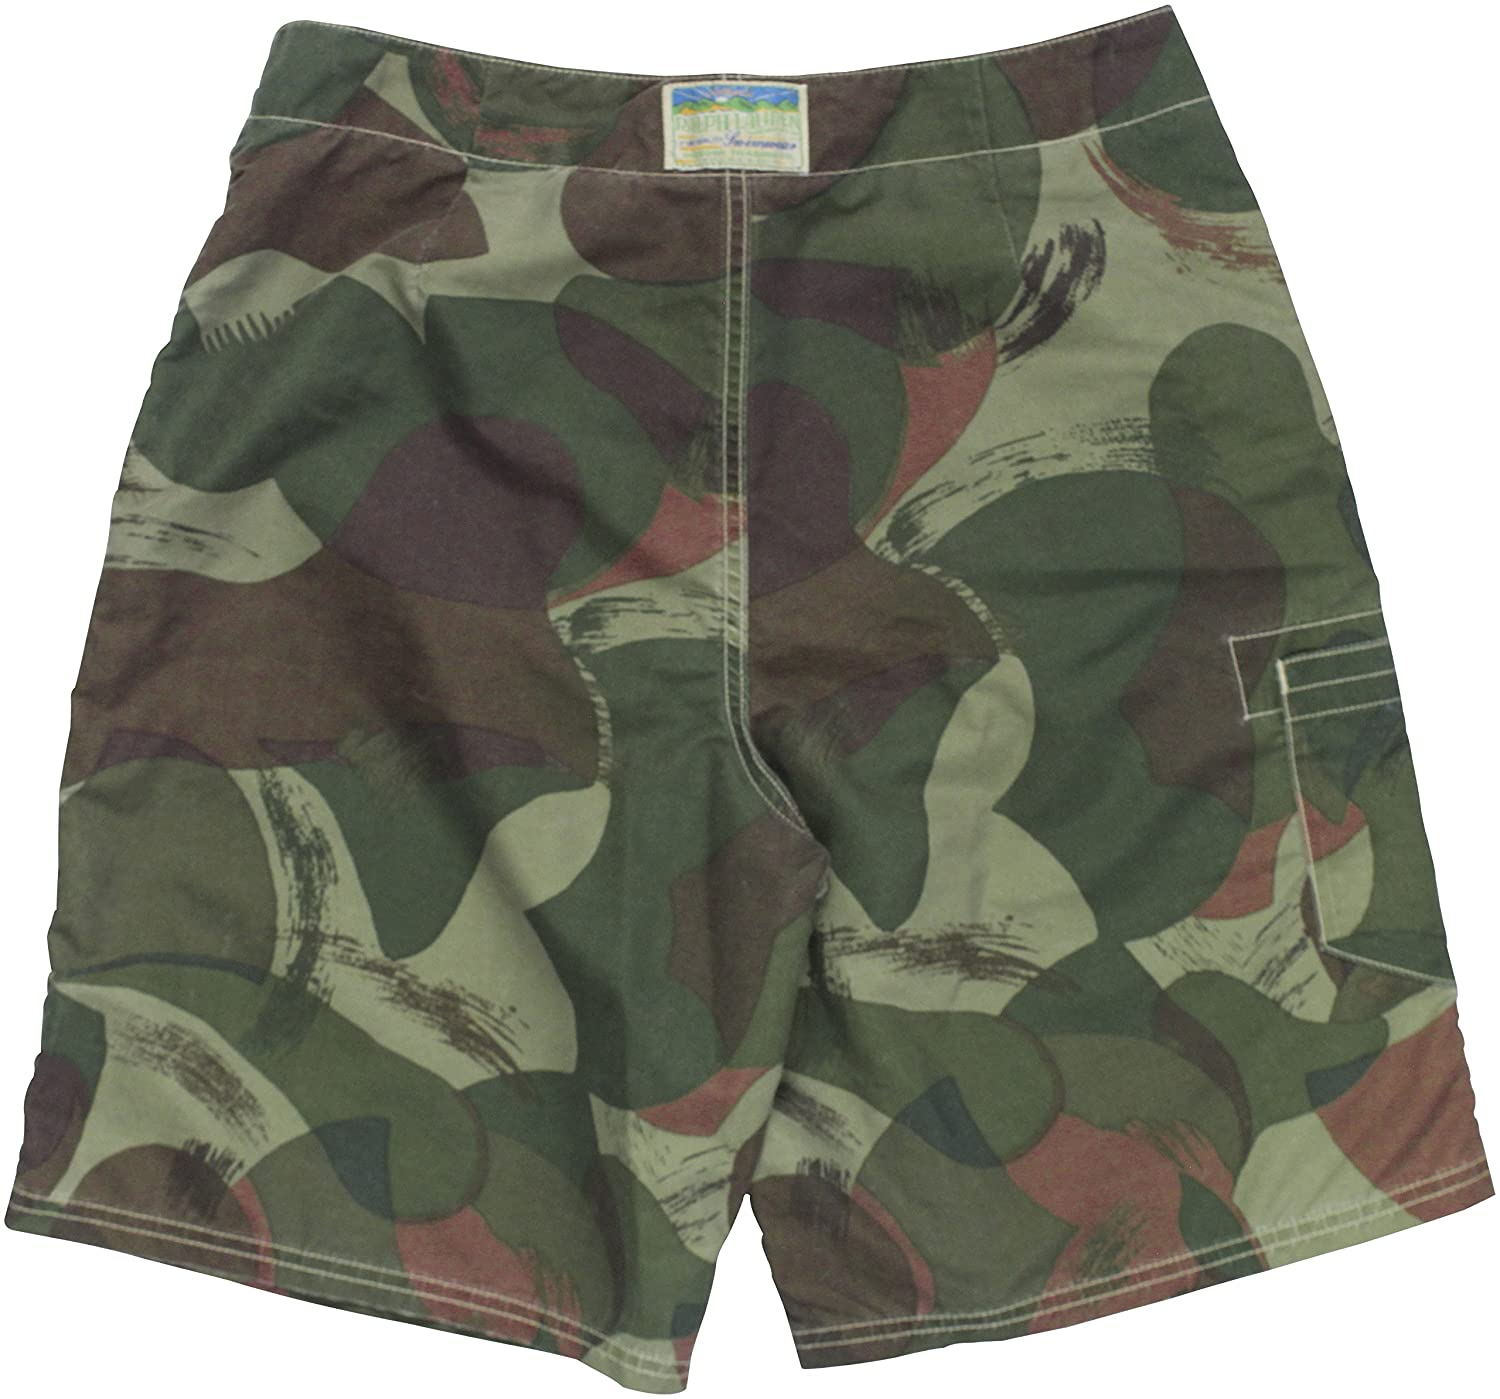 051cc46ed5 RALPH LAUREN Polo Men's Camouflage-Print Shelter Island Swim Trunks (34,  Eco Camo) | Amazon.com